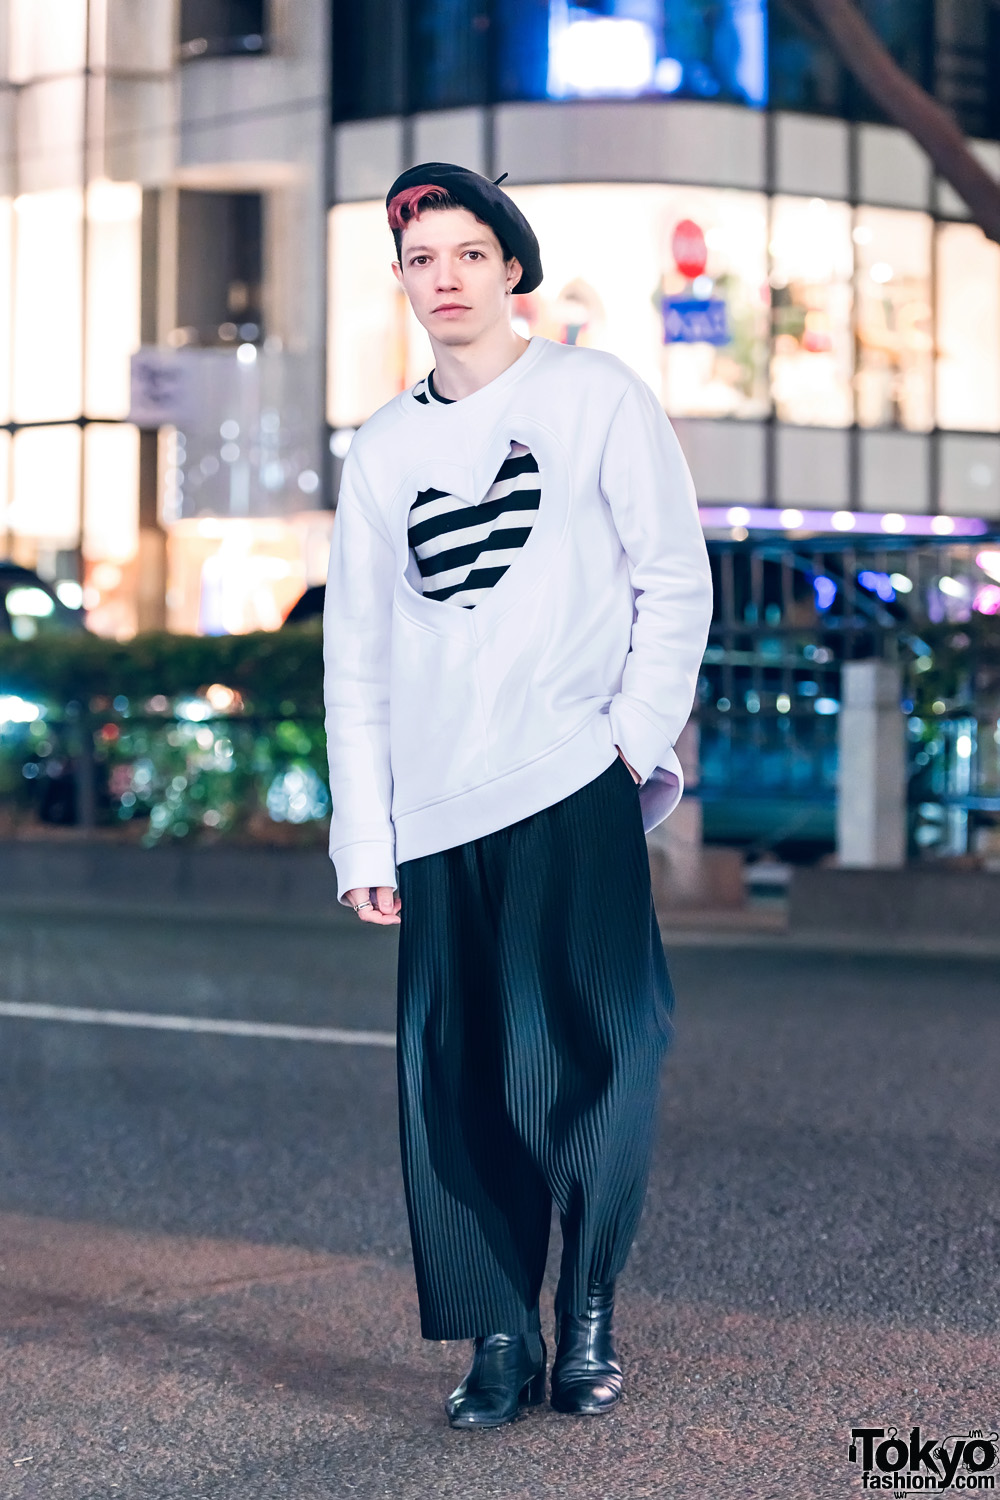 Tokyo Art Director in Harajuku w/ Dior Beret, Heart Sweater, Comme des Garcons, Issey Miyake &